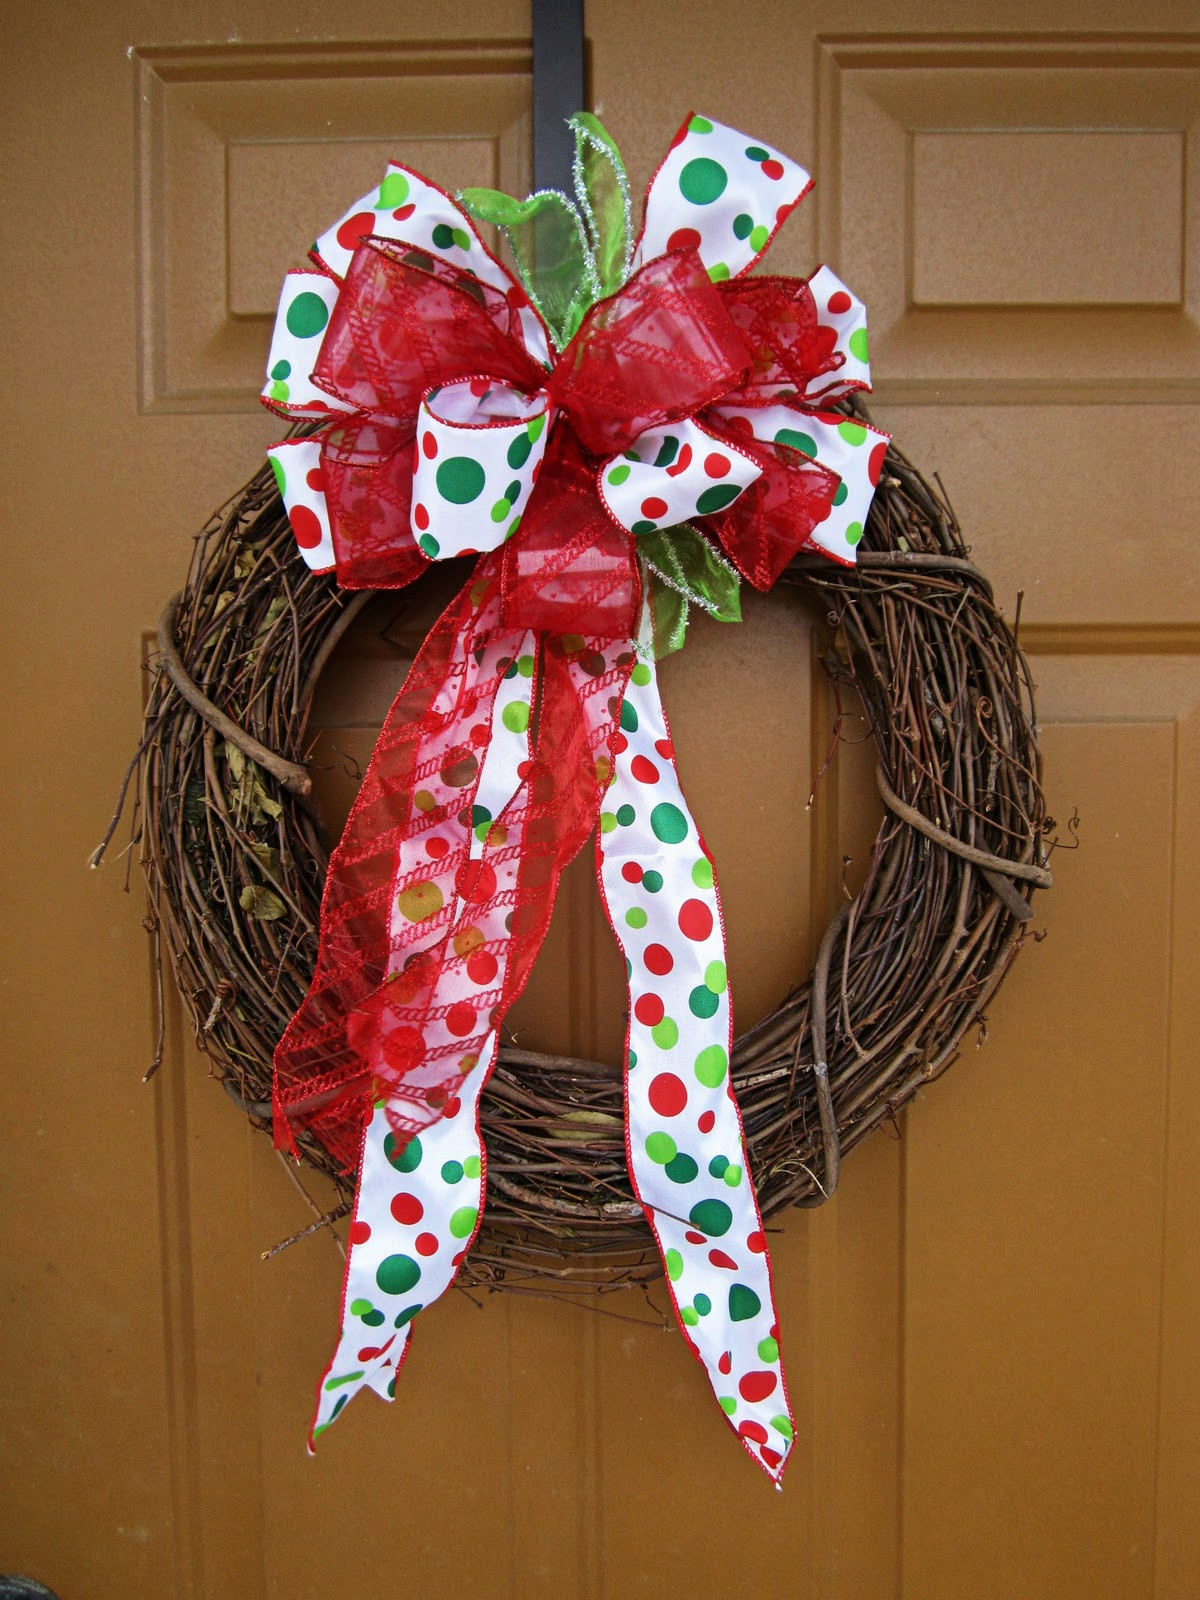 Best ideas about Easy DIY Christmas Wreaths . Save or Pin Food Love & Life diy easy christmas wreath Now.